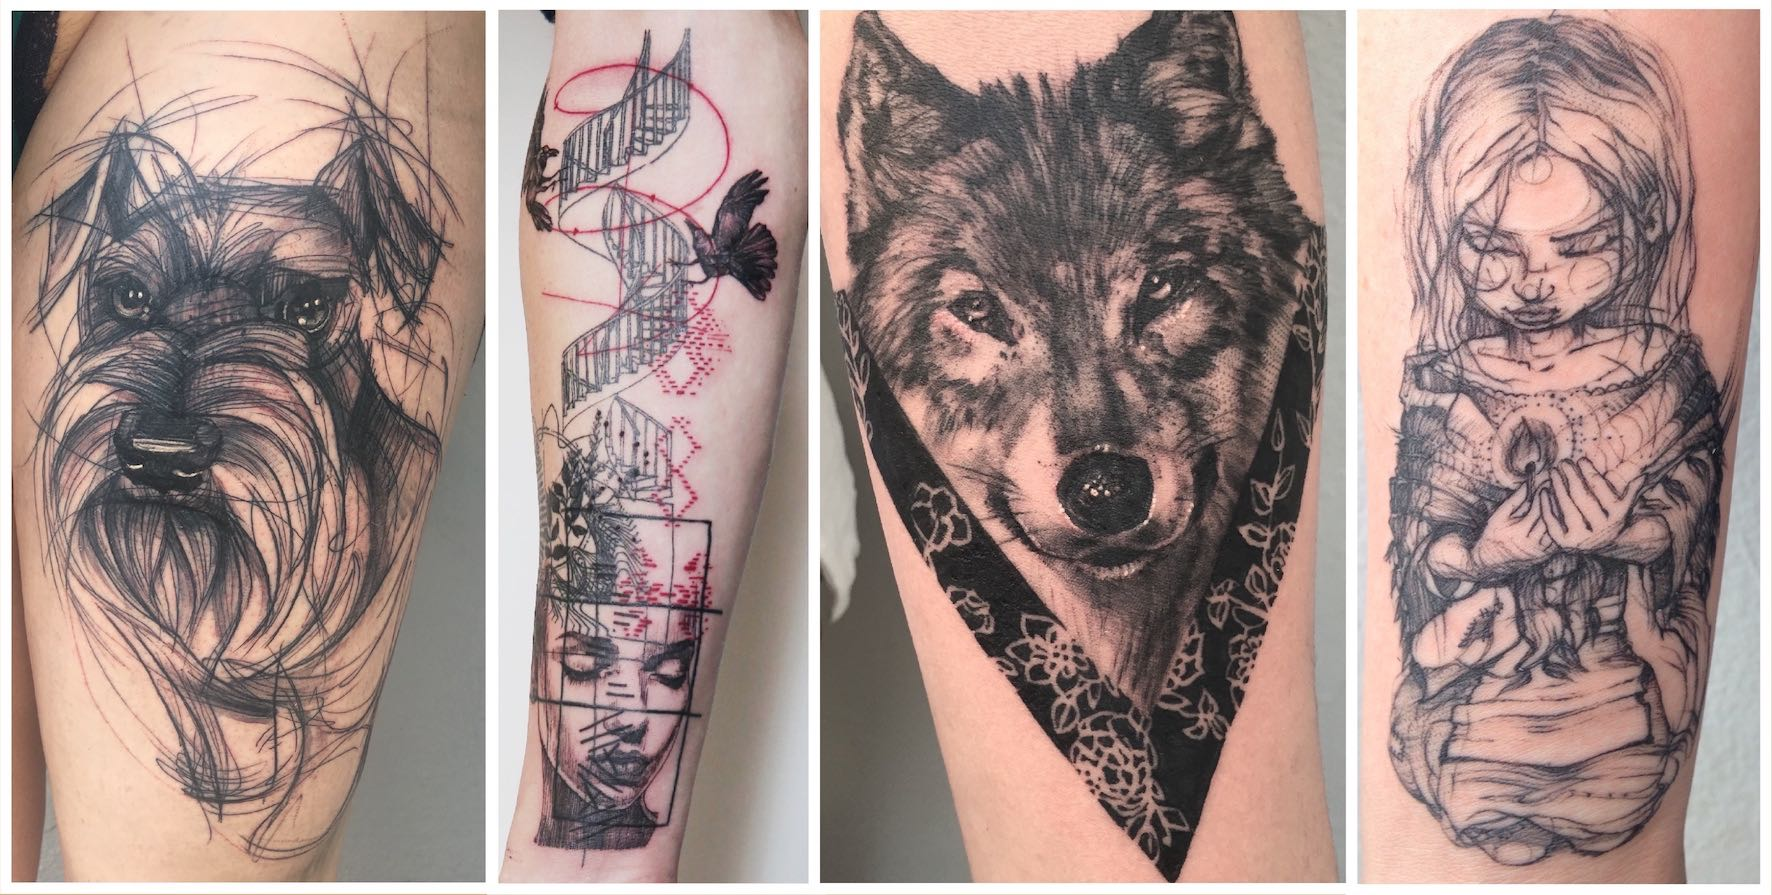 A selection of tattoos done by Lauren Peachfish